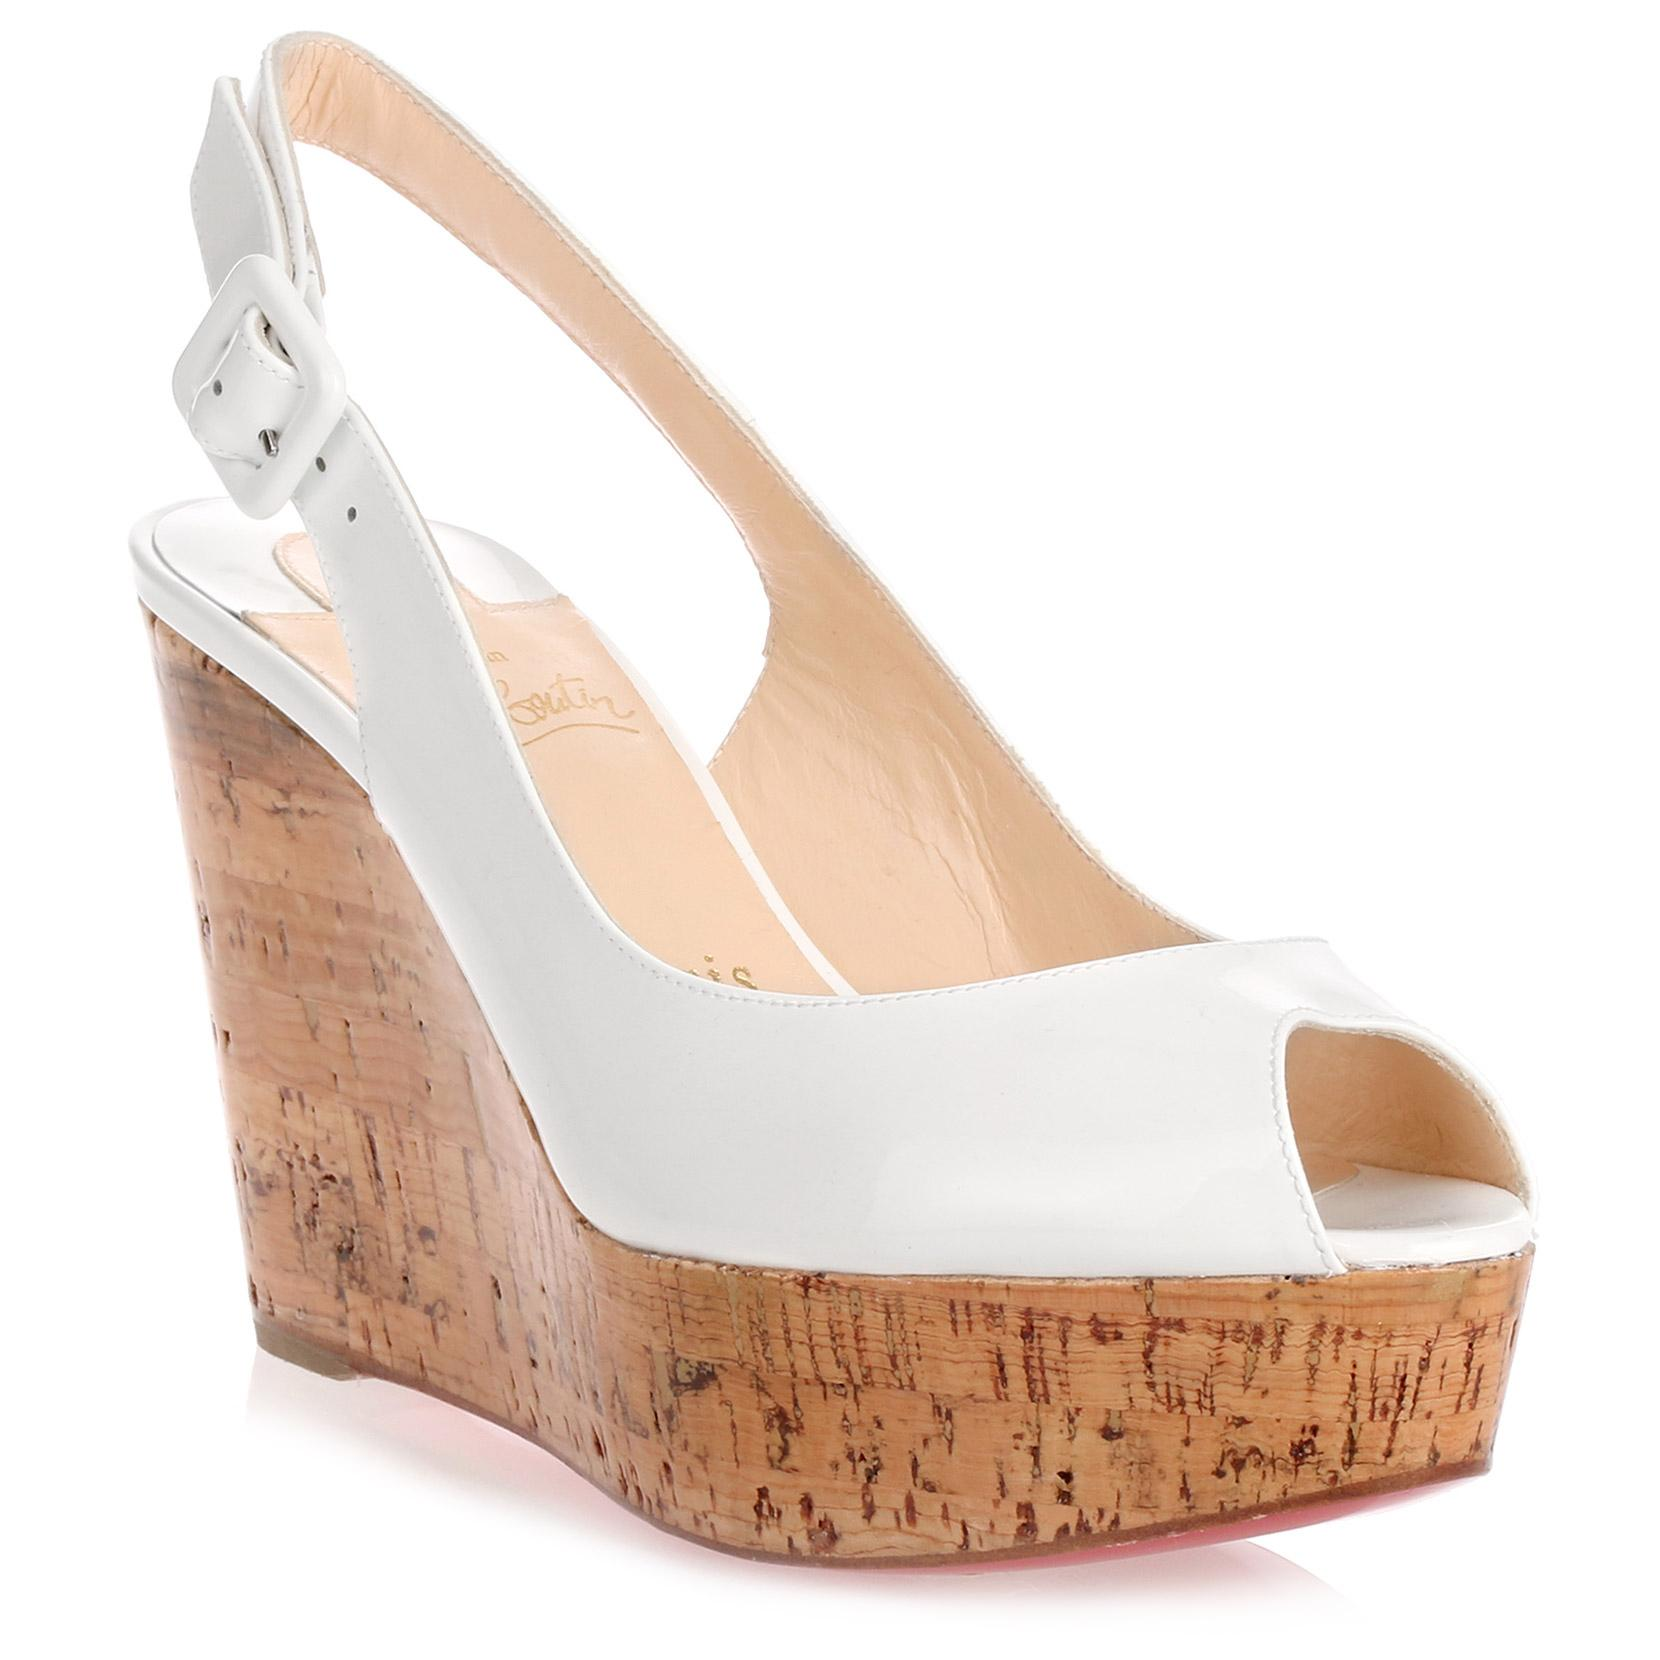 Christian Louboutin Une Plume Wedge Sandals